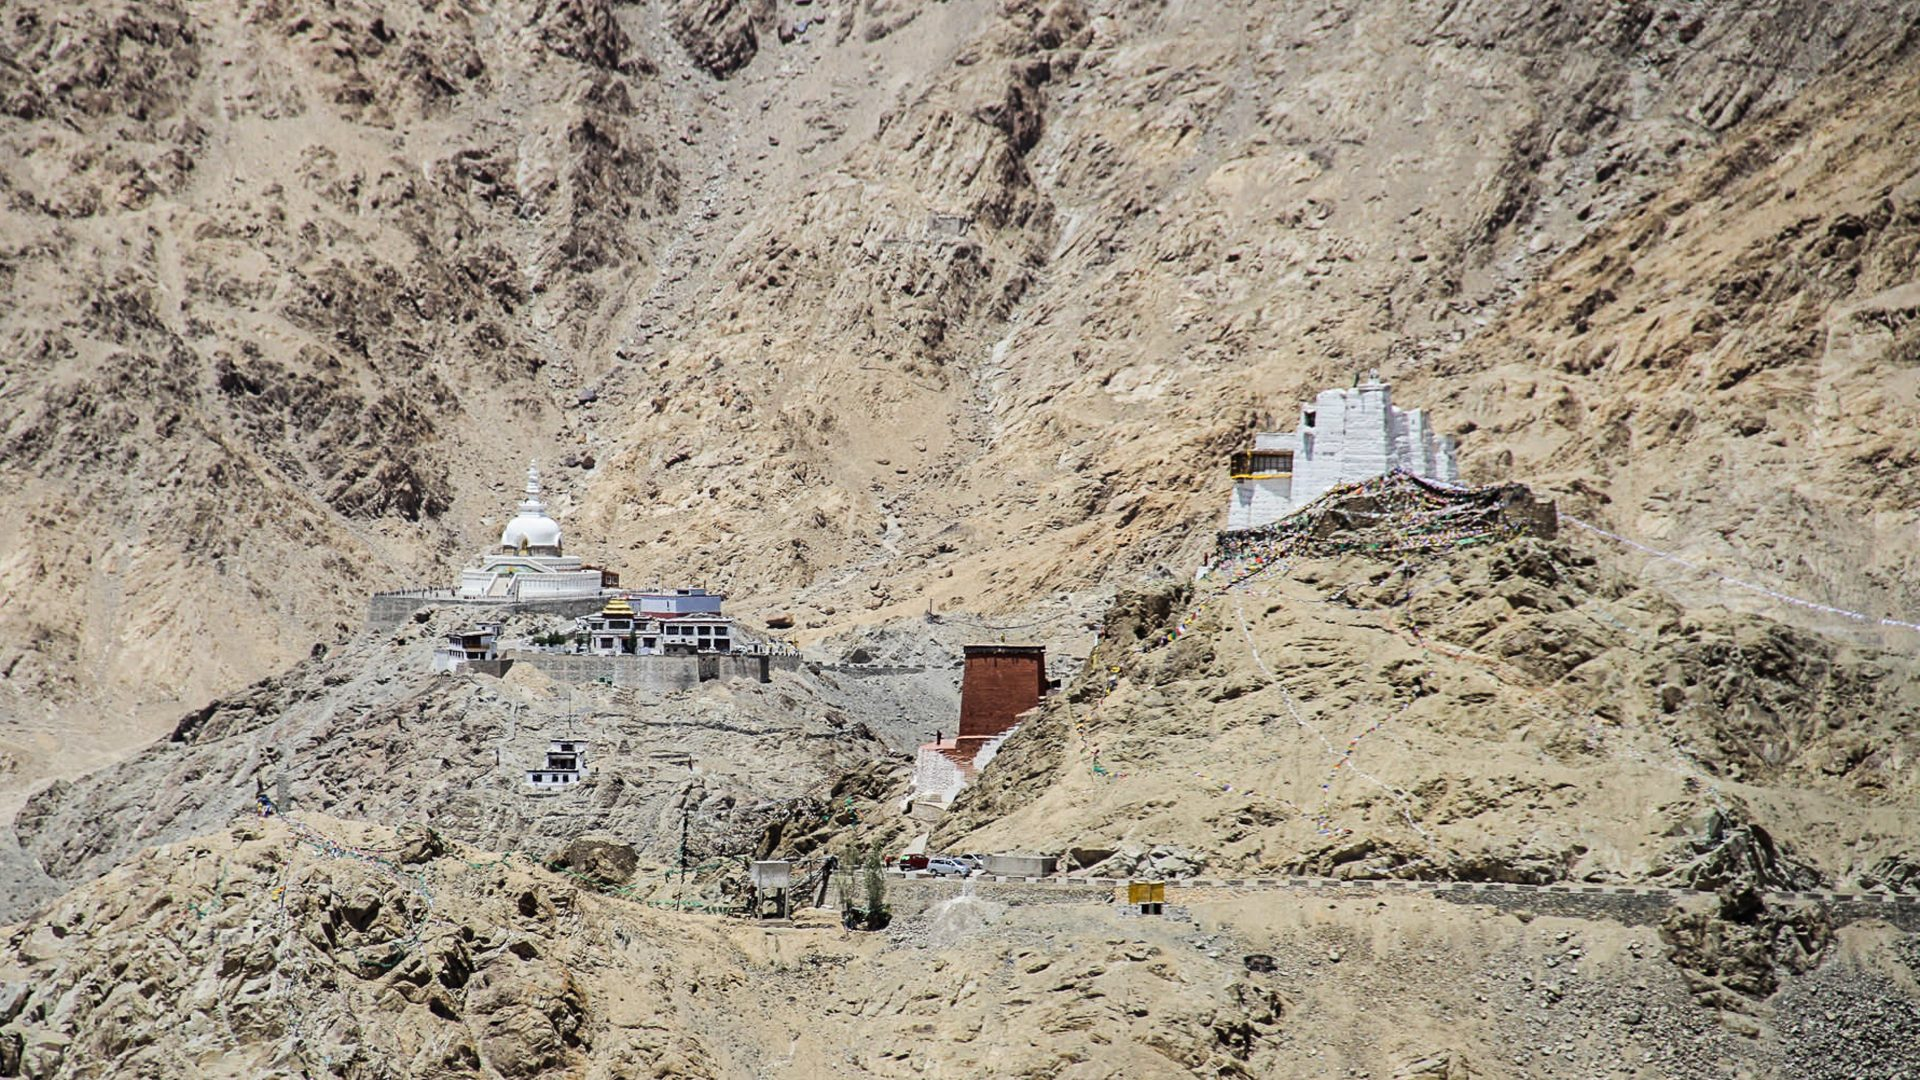 Buildings nestled in the mountainous terrain of the Indus Valley, Ladakh in the Himalayas.